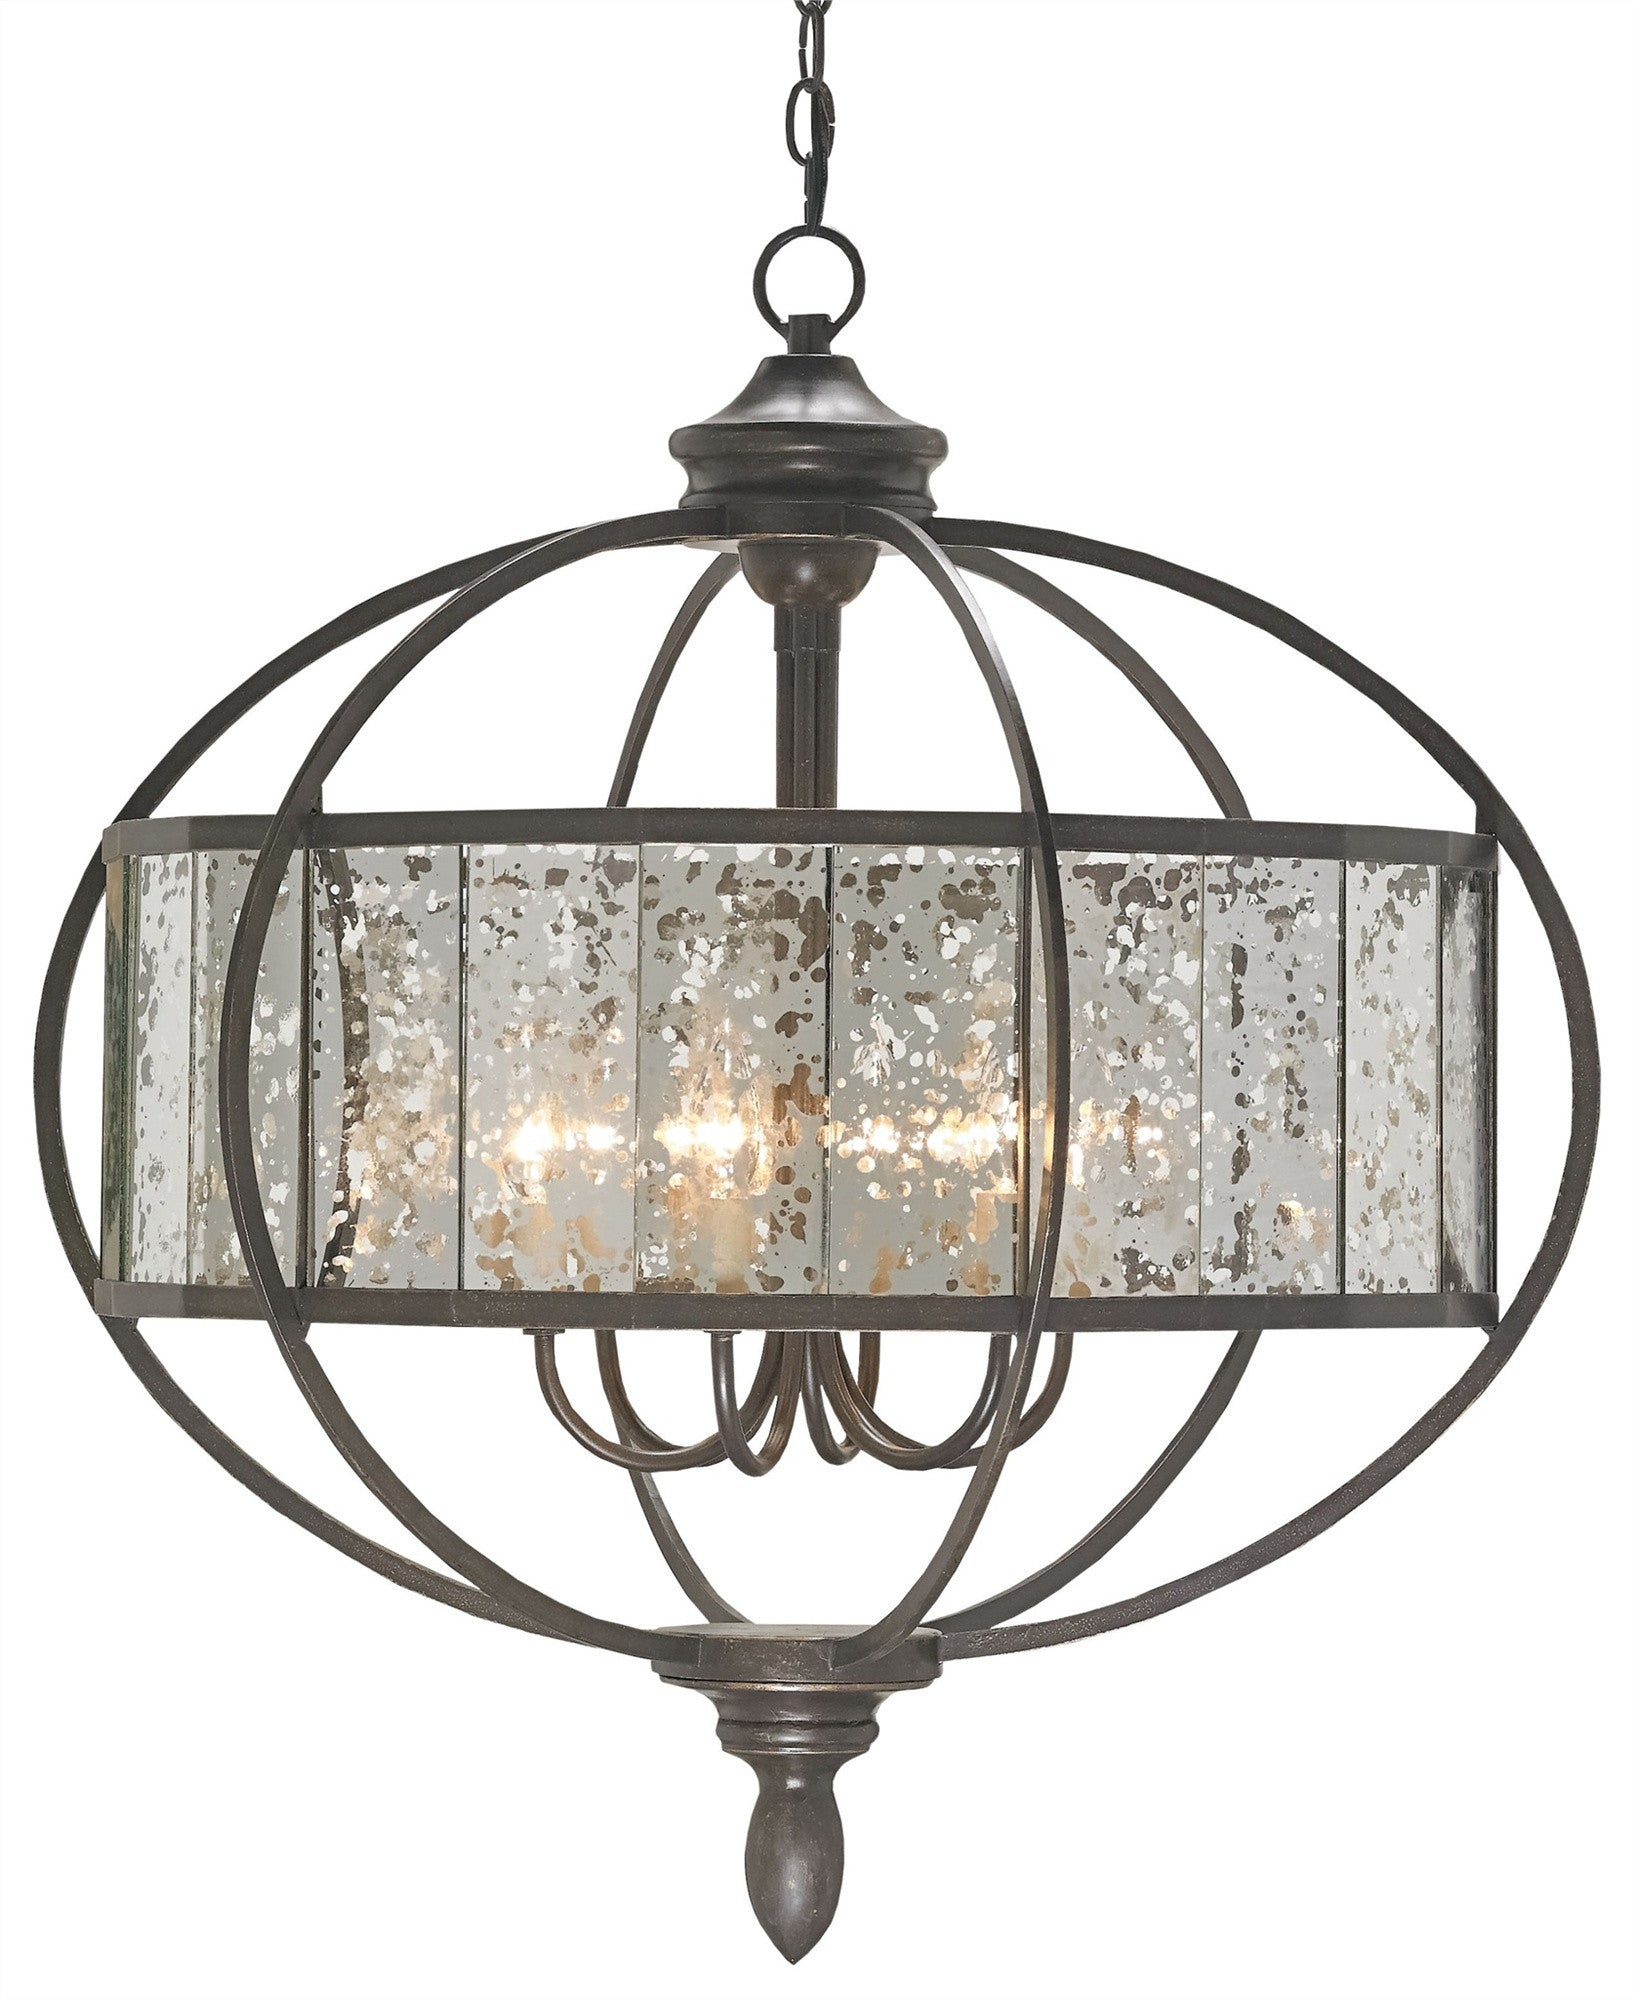 Currey And Company Phone Number: Florence Chandelier Design By Currey & Company